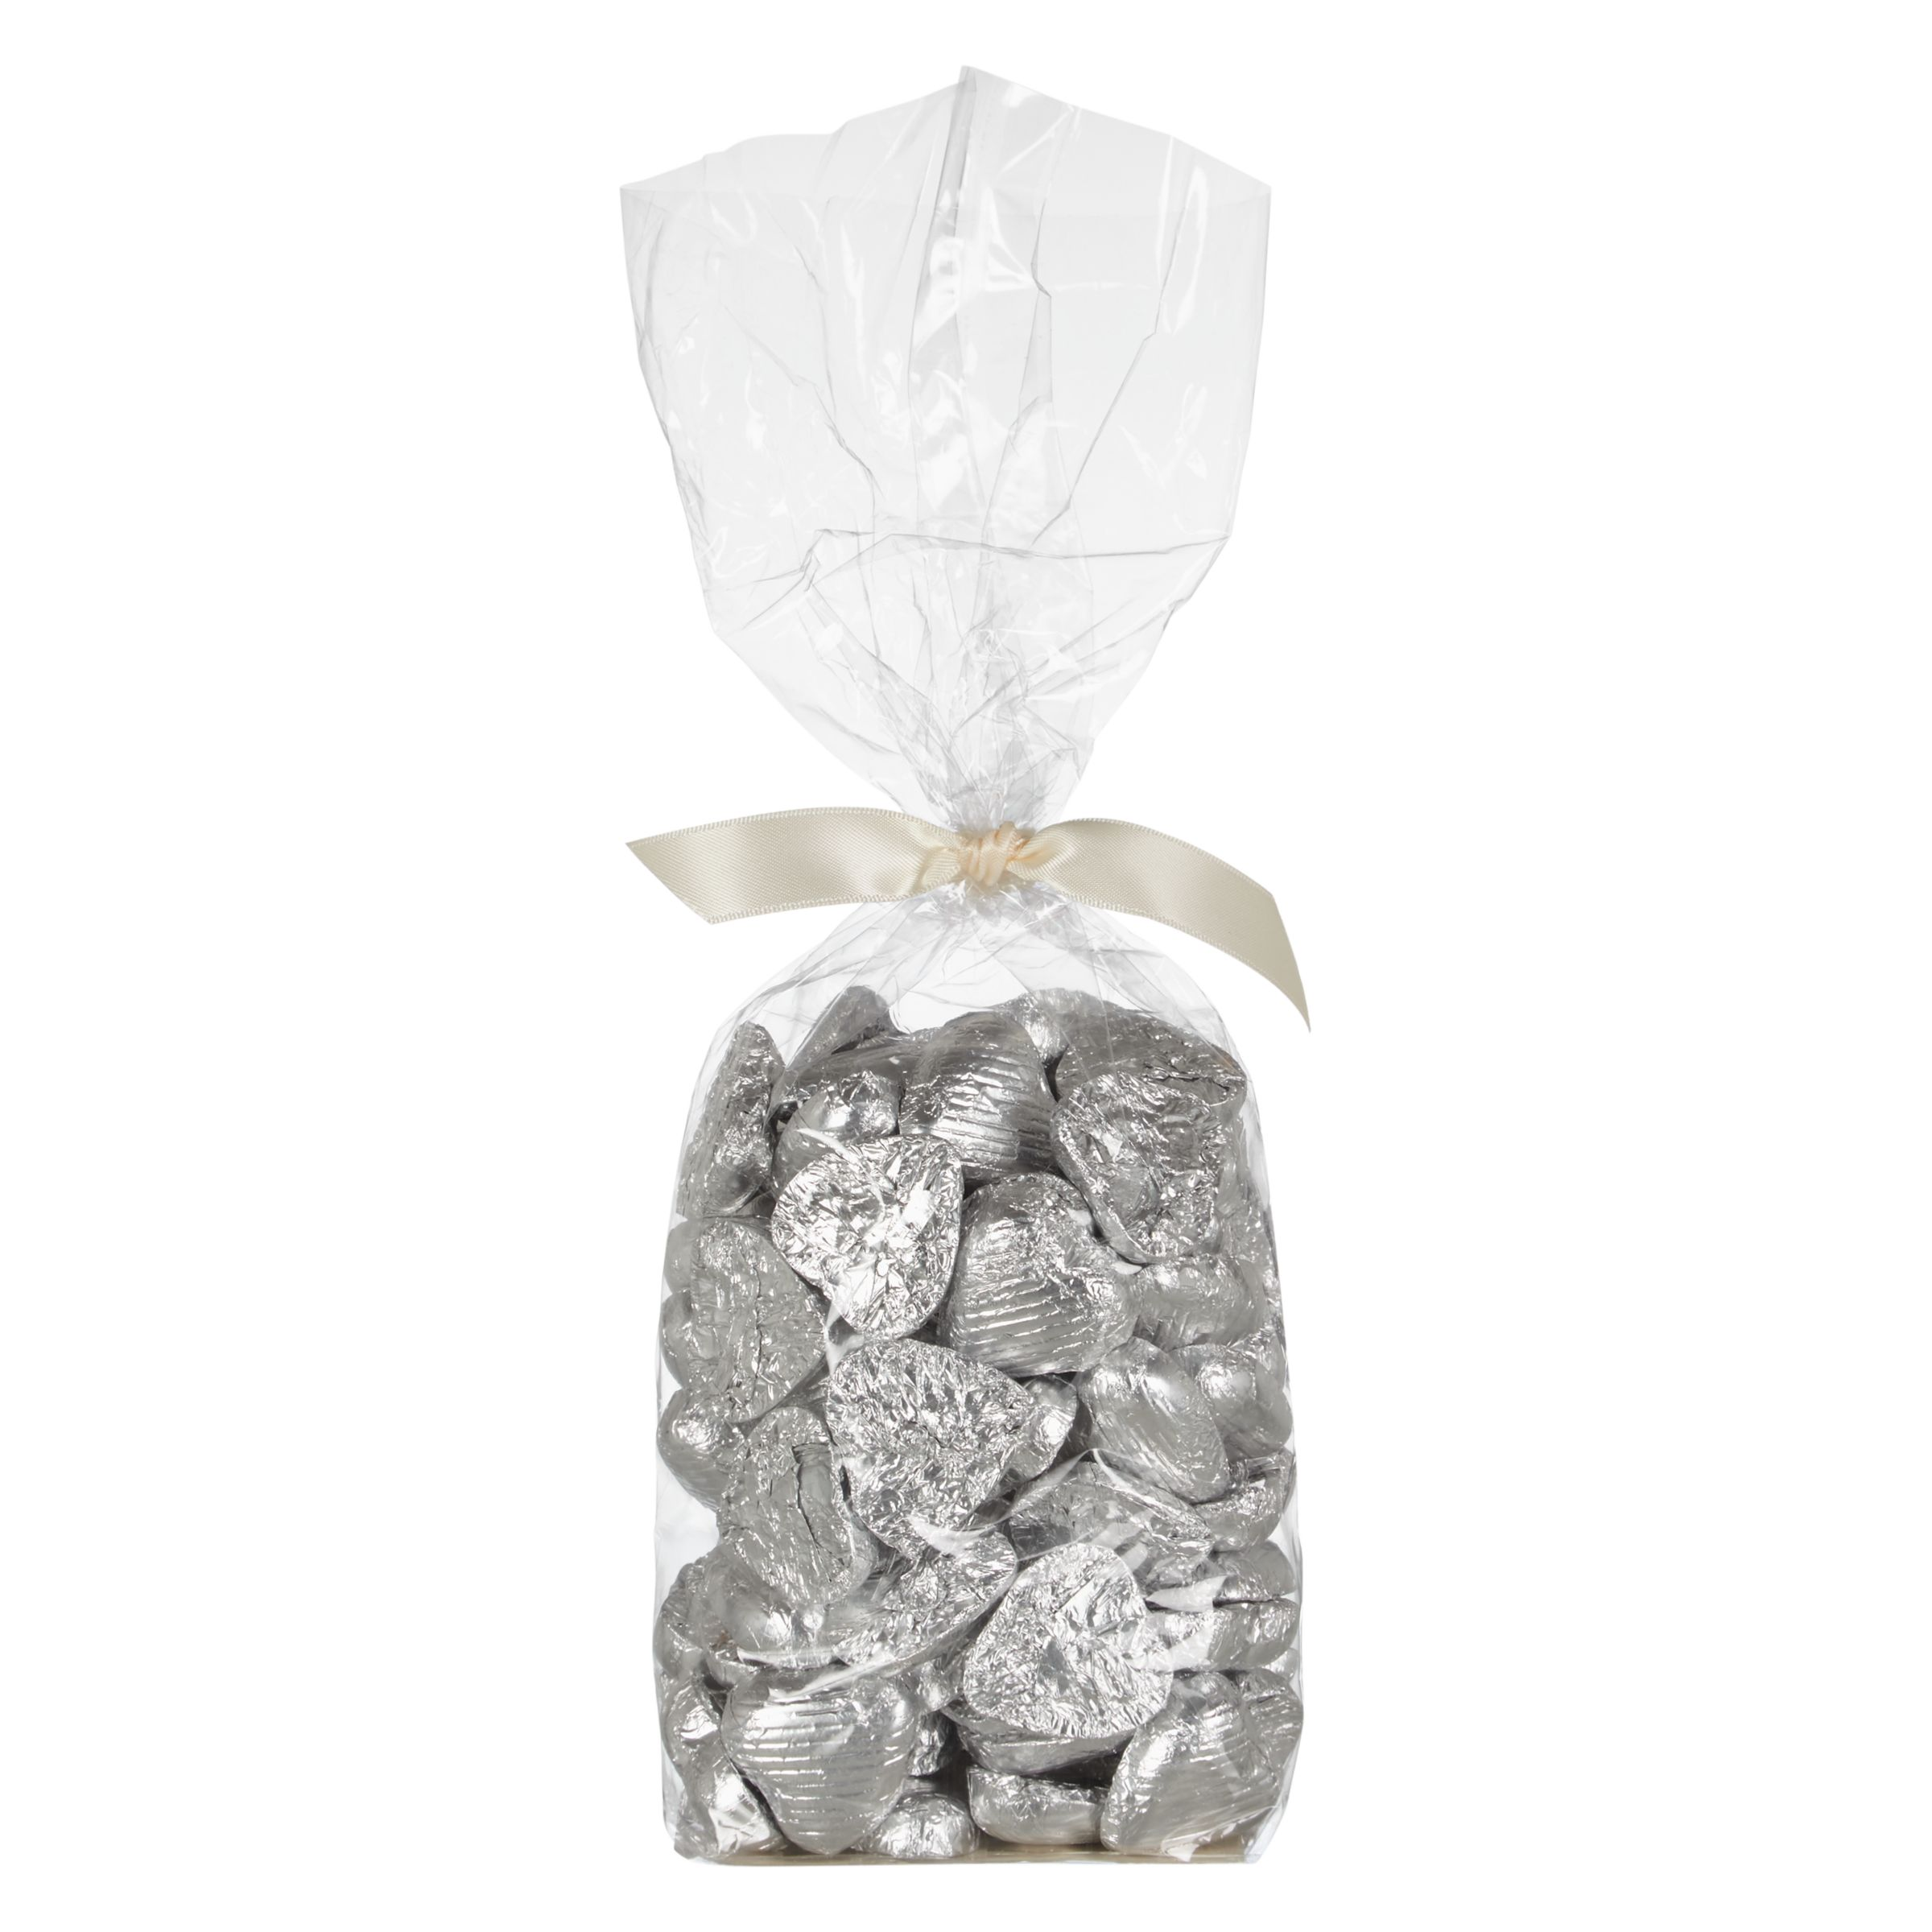 John Lewis Wedding Gift Box : Buy Bag of Solid Milk Chocolate Foiled Hearts Online at johnlewis.com